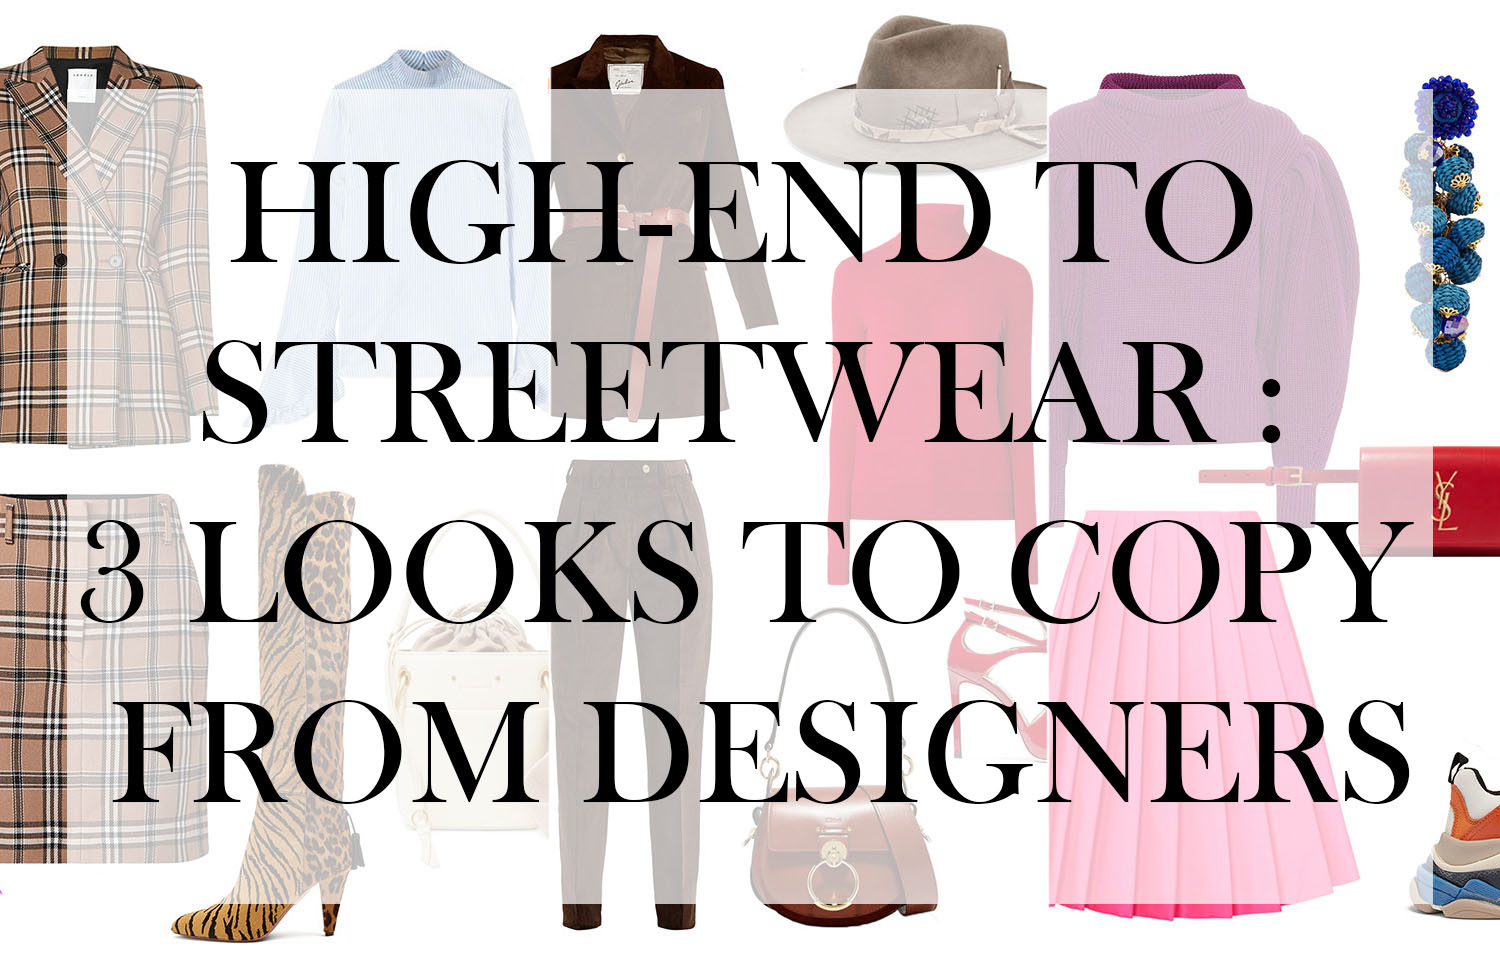 floortjeloves, wishlist, shop, shopping, HIGH-END TO STREETWEAR : 3 LOOKS TO COPY FROM DESIGNERS, high end, streetwear, budget, designer, must haves, new season